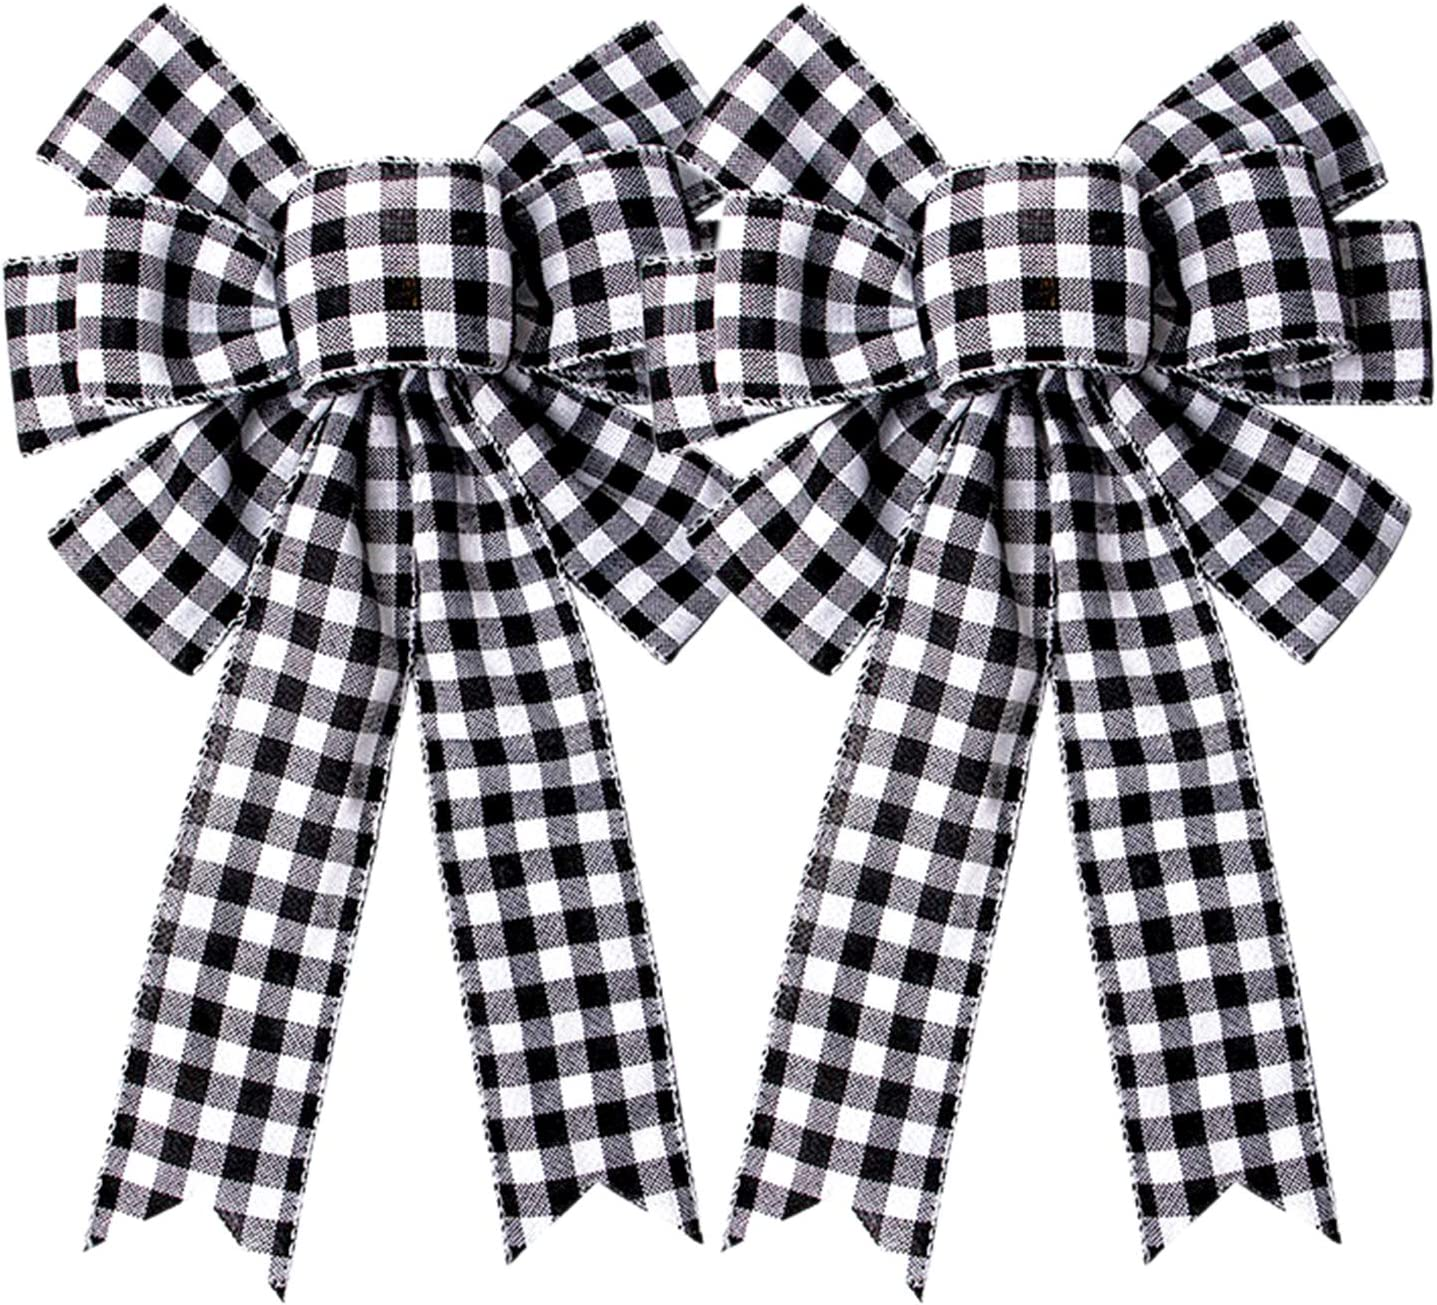 Iceyyyy Large Buffalo Plaid Bow - 16.4x10 inch Black and White BuffaloPlaidCheck Swag Bow Fall Christmas Thanksgiving Wreath Gift Bow Christmas Tree Topper Bow for HomeIndoorOutdoorOrnaments (2)